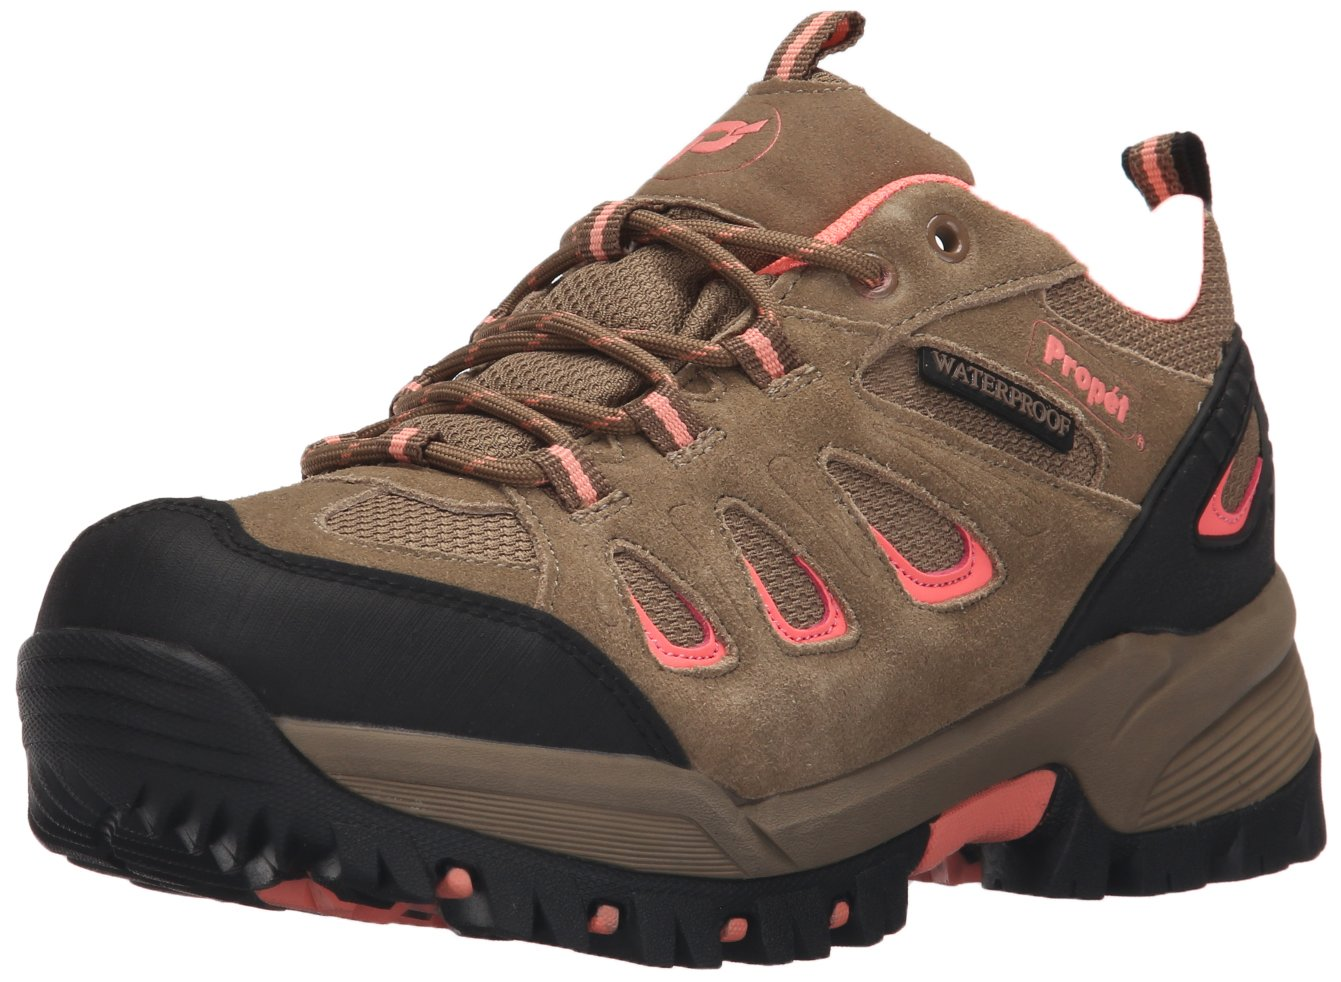 Propet Women's Ridgewalker Low Boot B01AYQ5T0A 8.5 B(M) US|Gunsmoke Melon